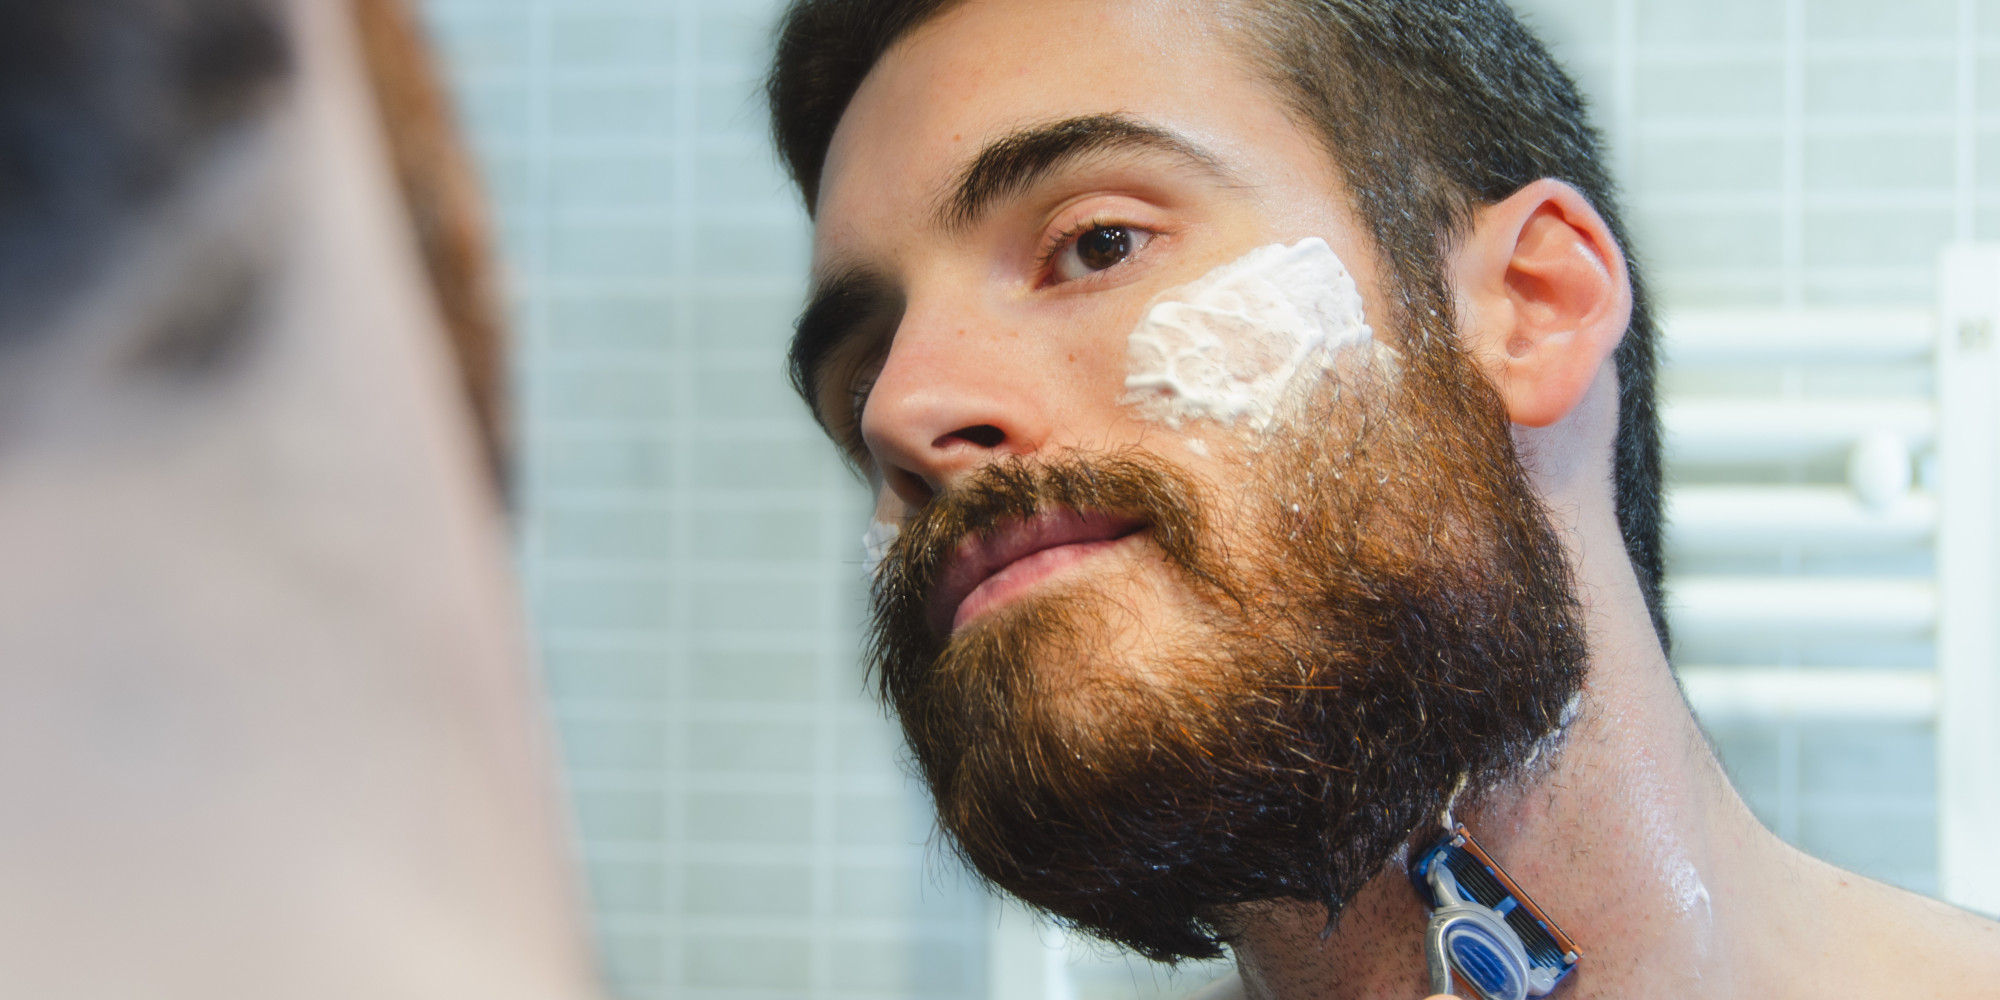 Man in the bathroom caring for his beard with a razor and shaving foam